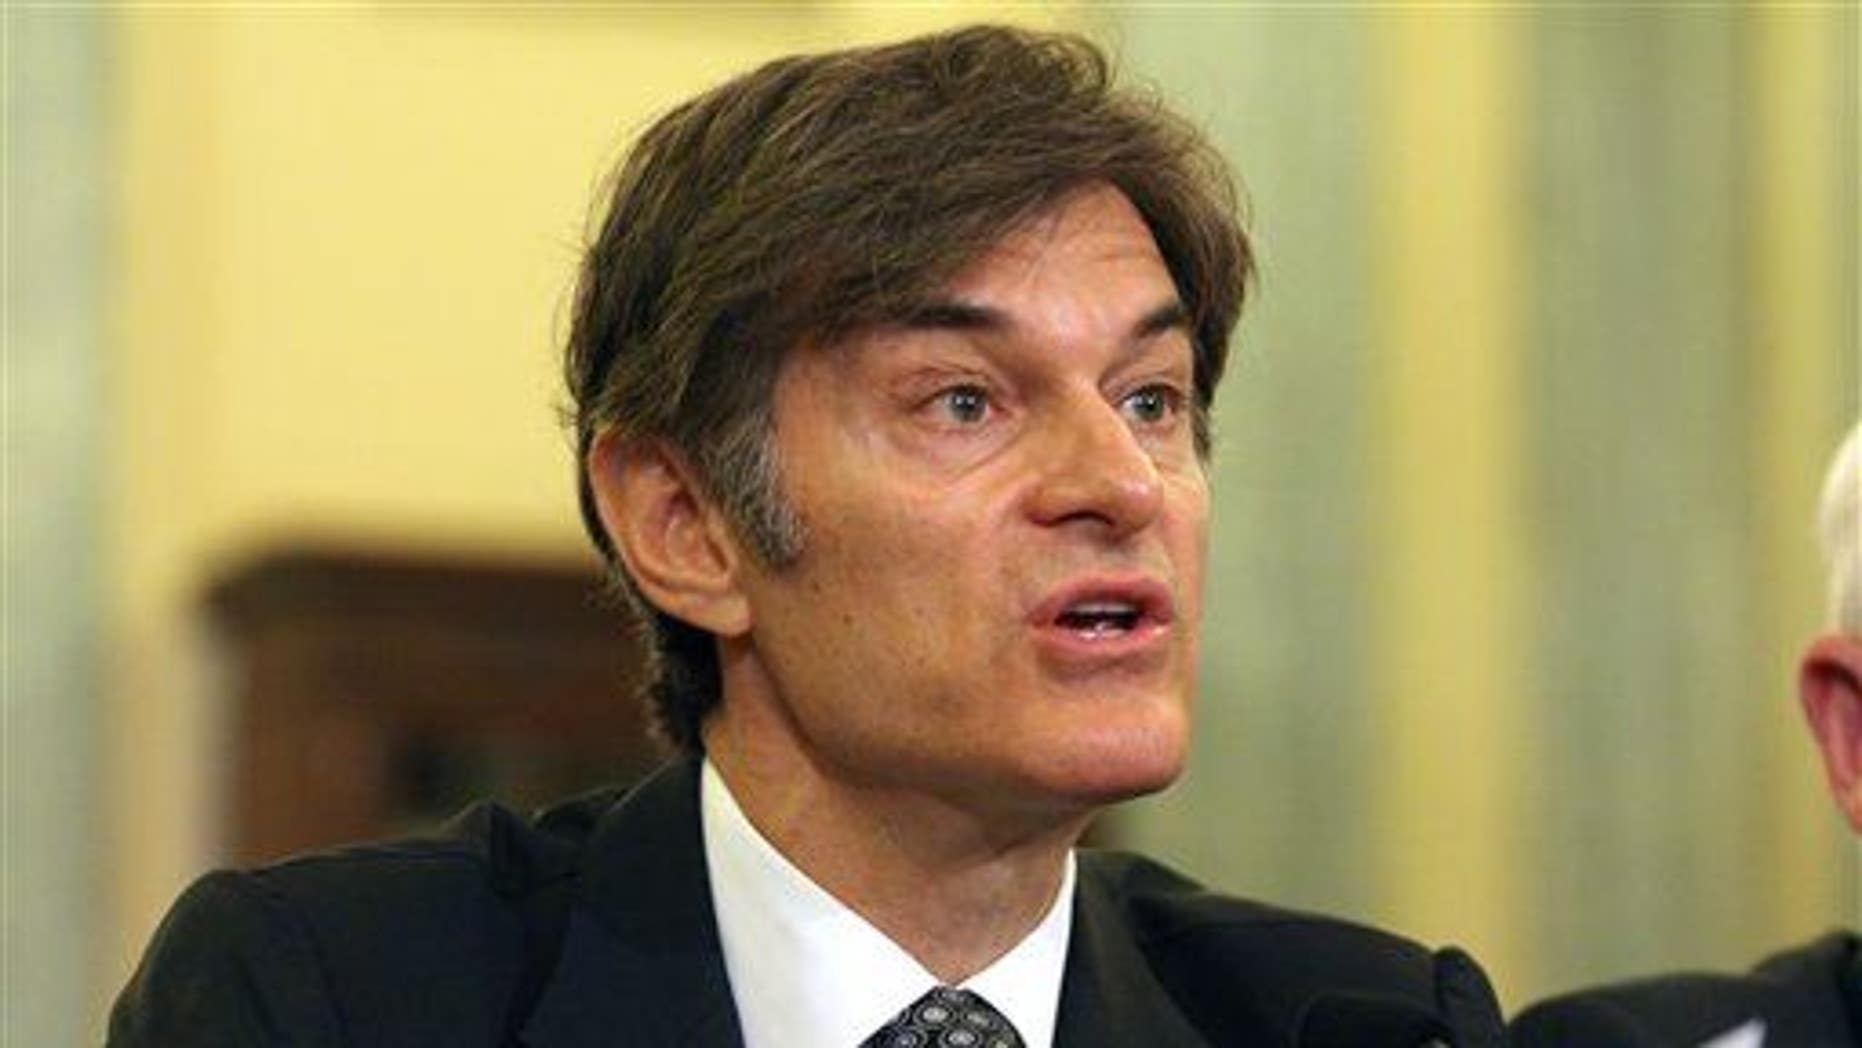 Dr. Mehmet C. Oz, chairman and professor of surgery, Columbia University College of Physicians and Surgeons, testifies on Capitol Hill on June 17, 2014, before a Senate subcommittee.